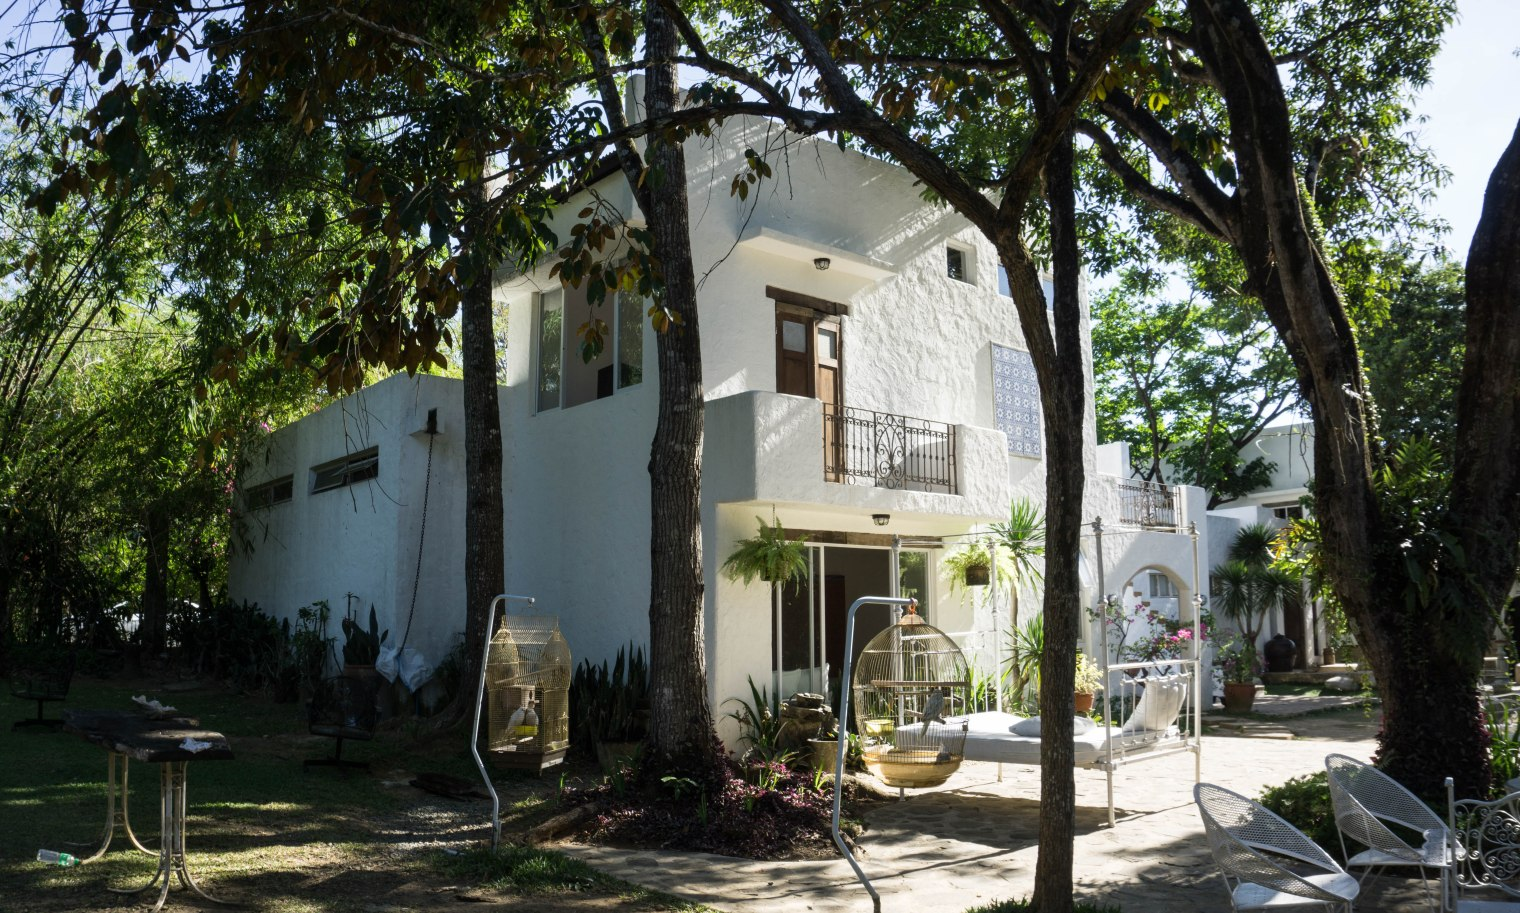 Pinto Art Museum: Architecture and Art